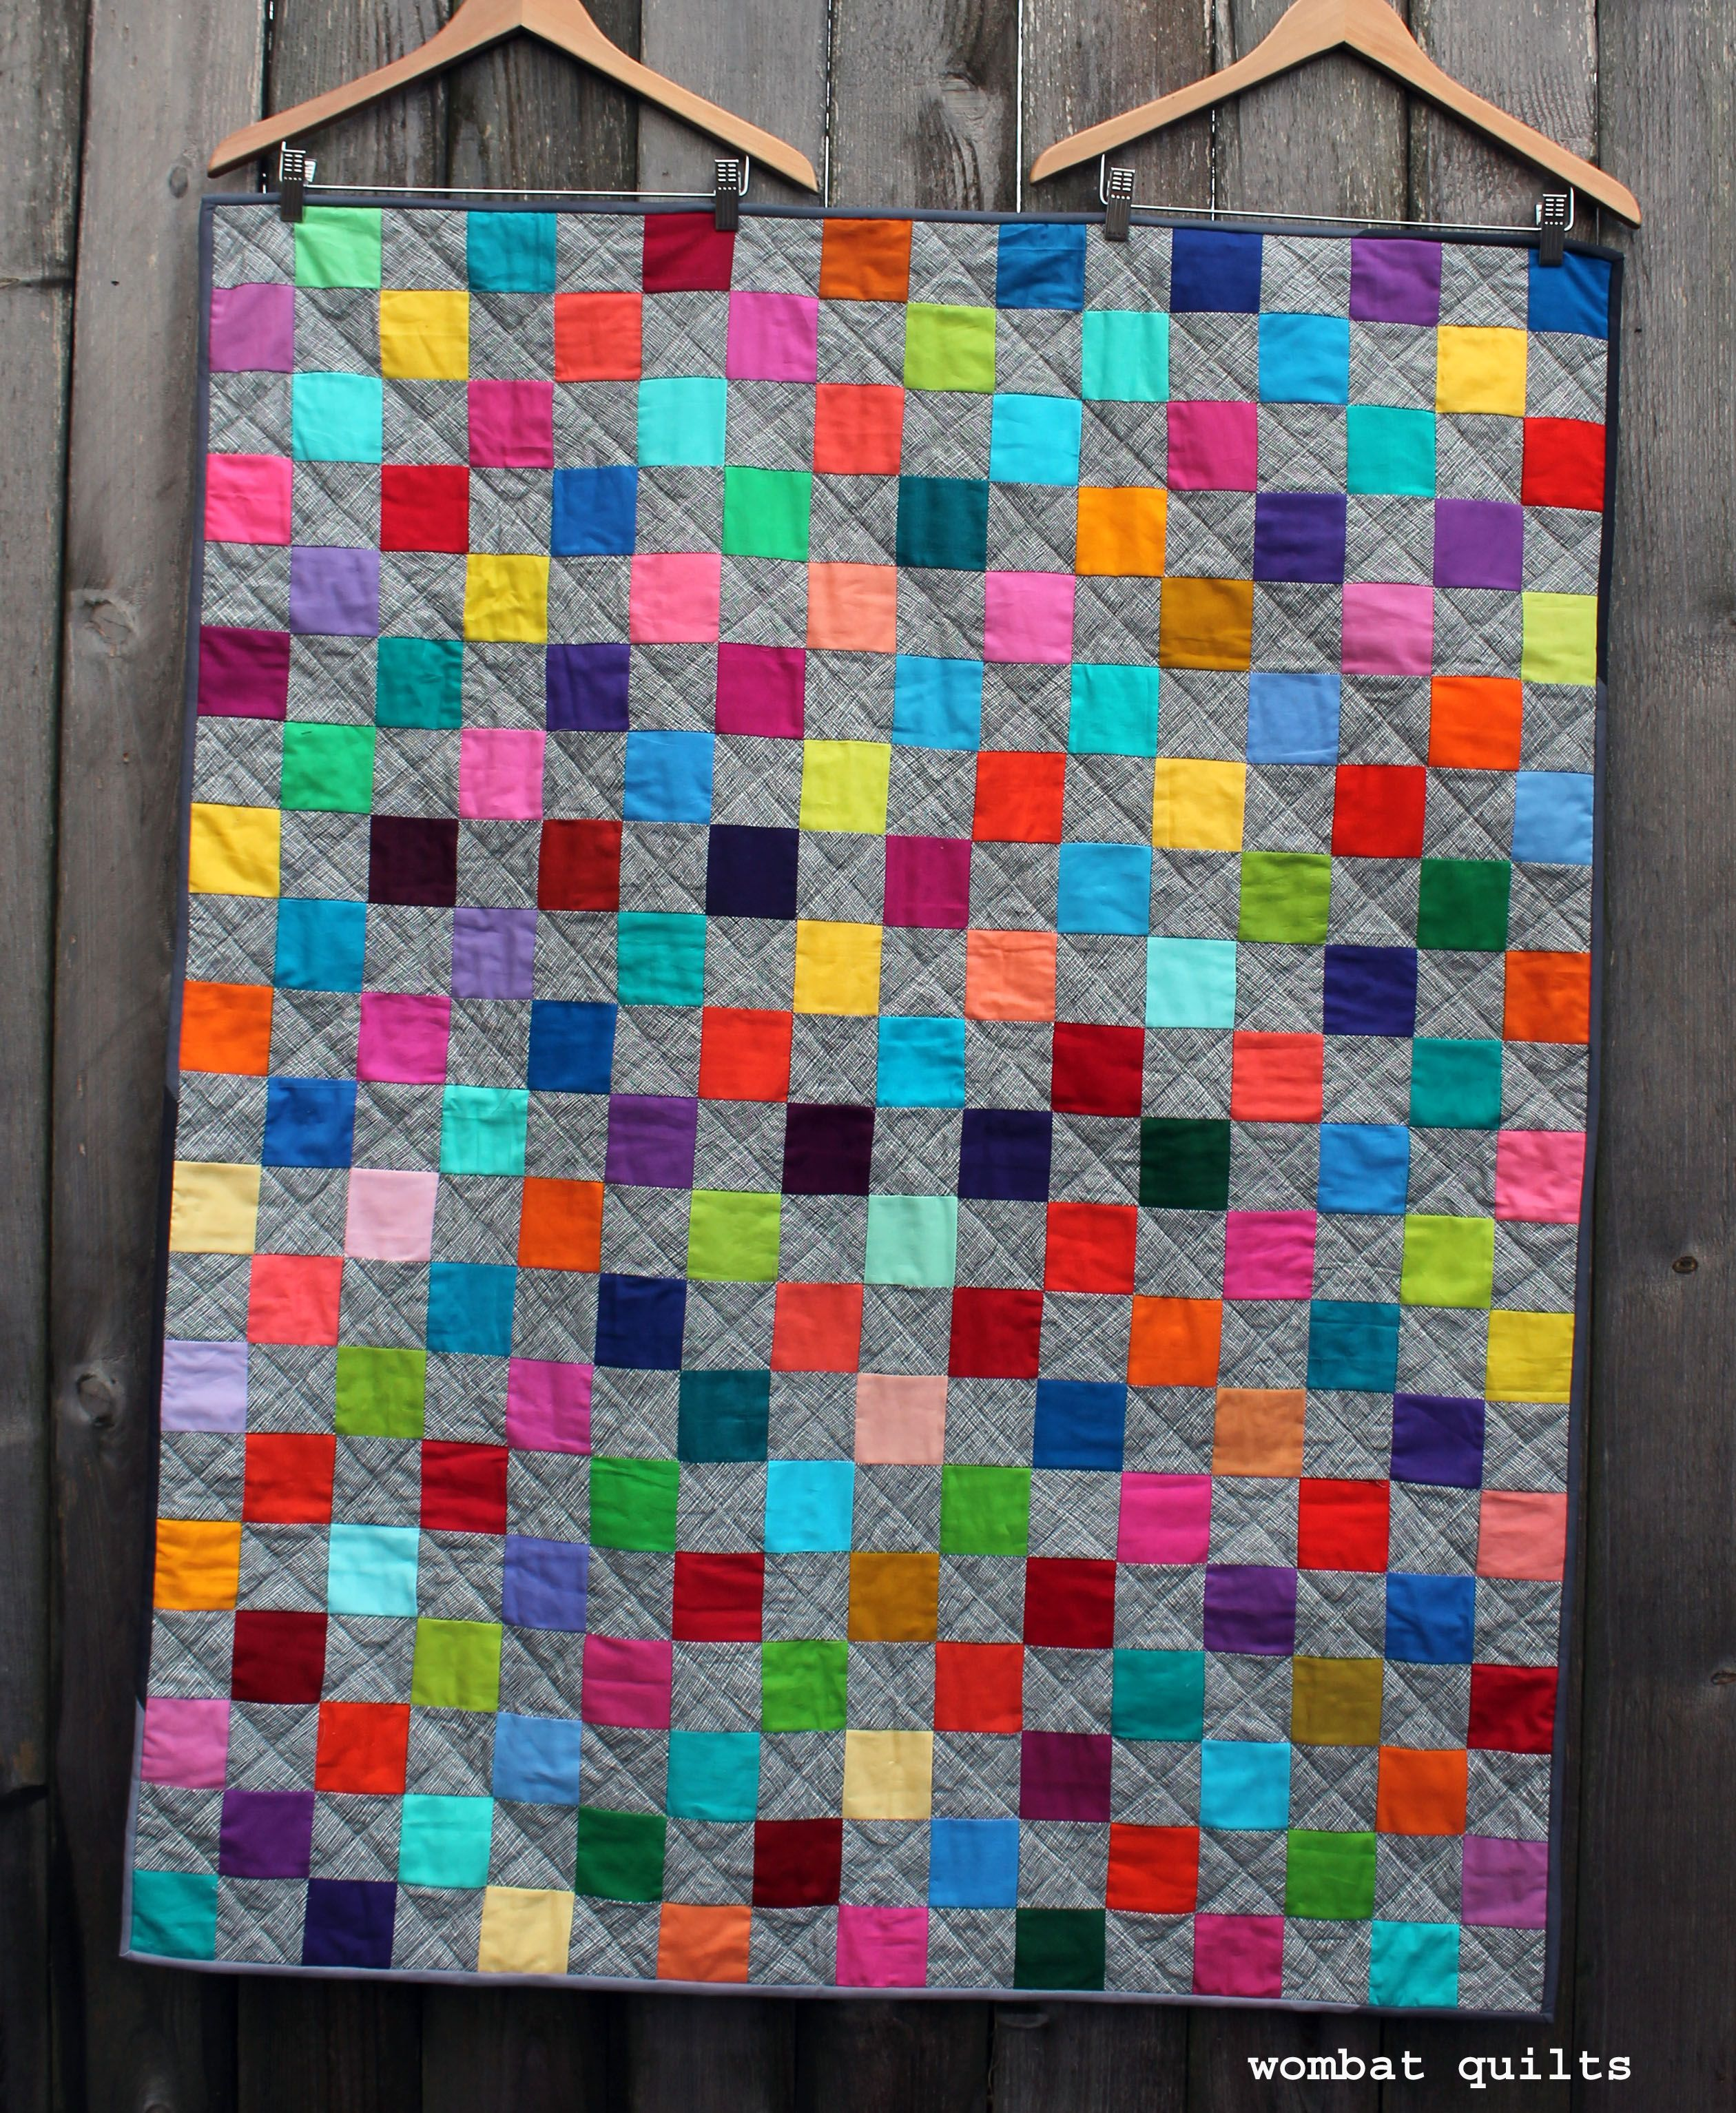 quilts - Google Search | Crochet Inspiration | Pinterest | Square ... : how to make quilt squares - Adamdwight.com